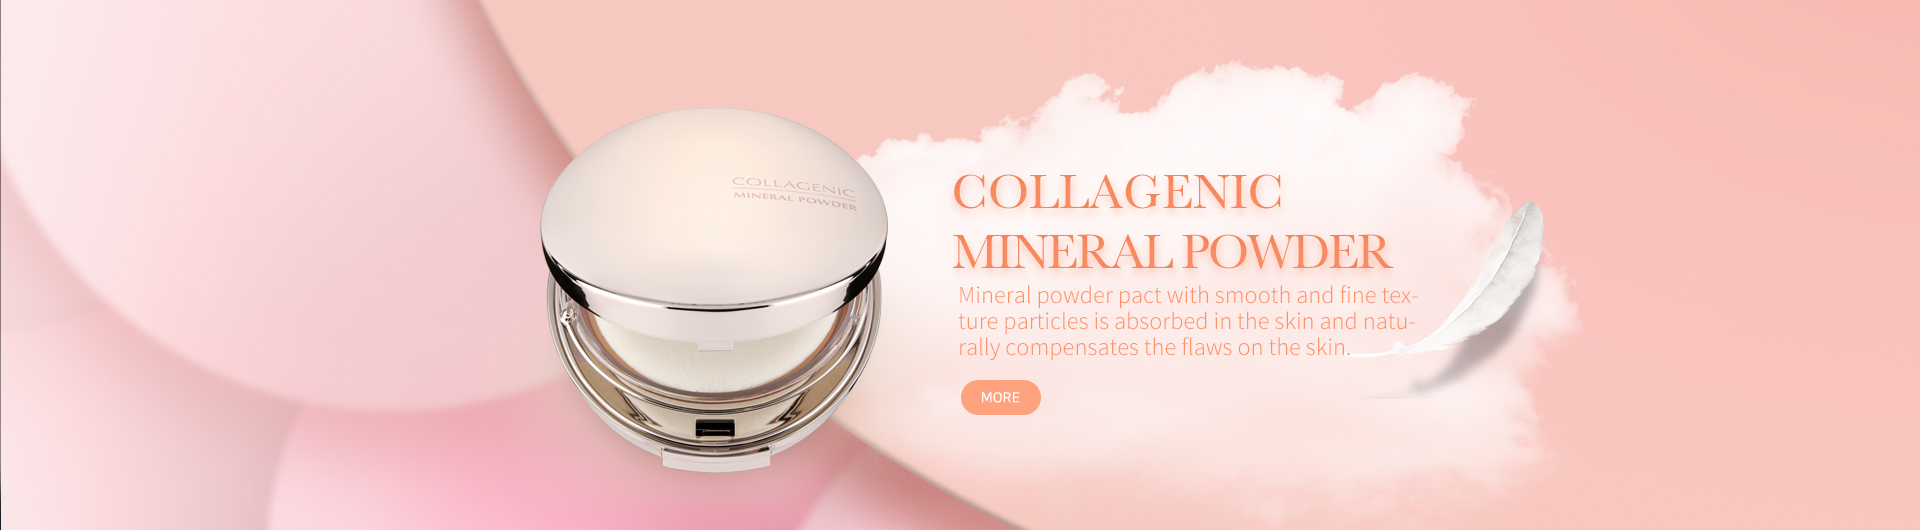 Collagenic Mineral Powder